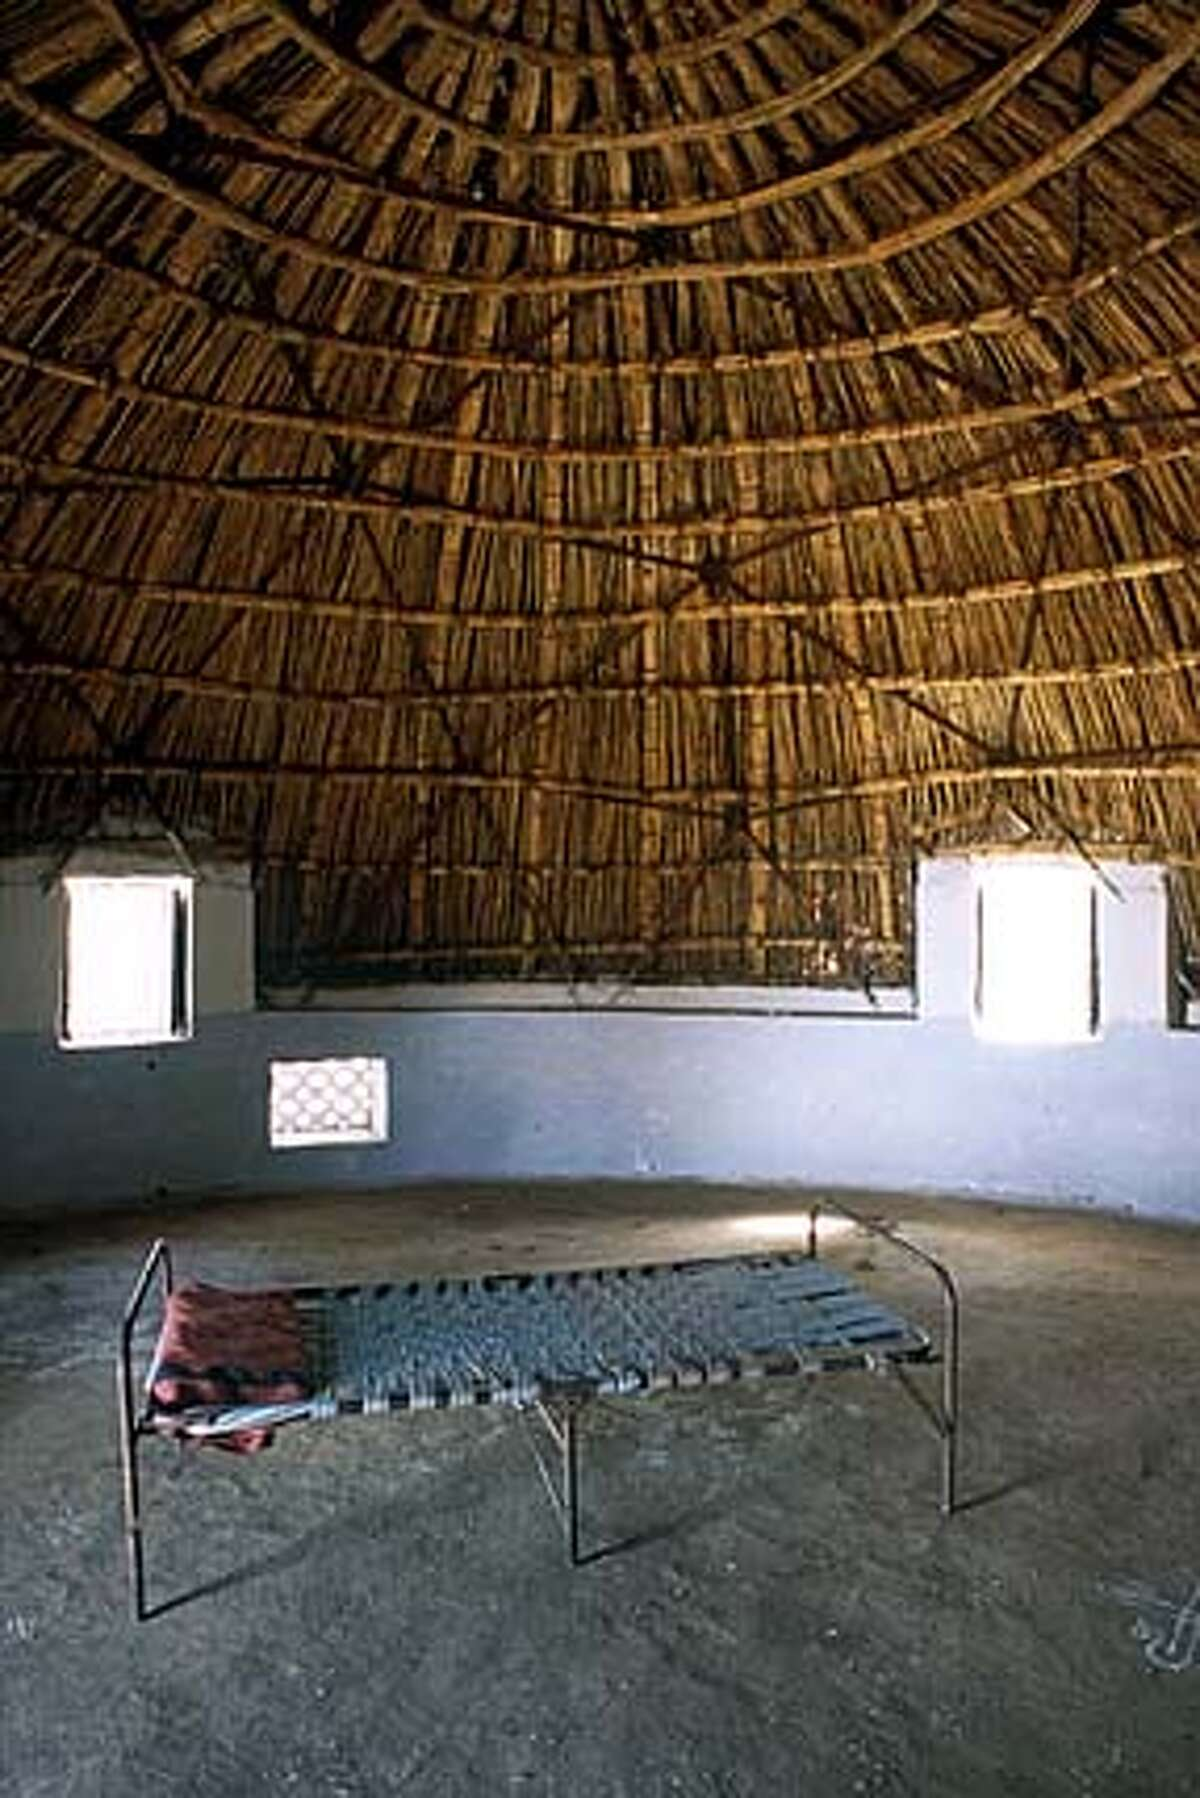 Old skills meet contemporary technology by Buckminster Fuller. The dome is constructed over a stone and plaster foundation and covered in thatch for homeless guests. Photo courtesy of the Aga Khan Award for Architecture